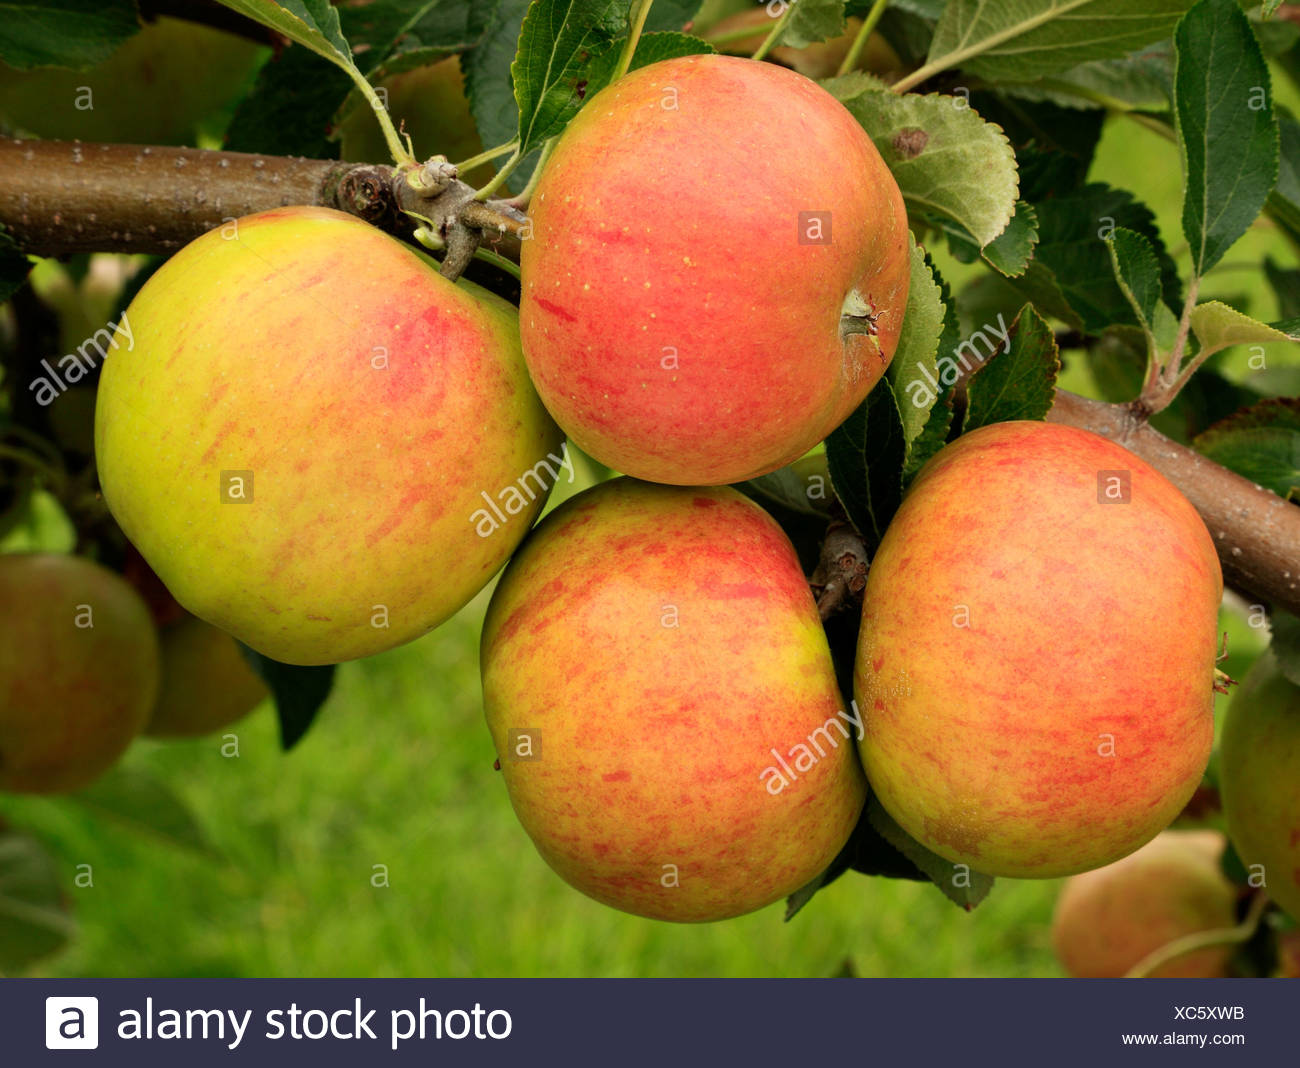 Apple, 'Lynn's Pippin', variety growing on tree, fruit apples England UK - Stock Image